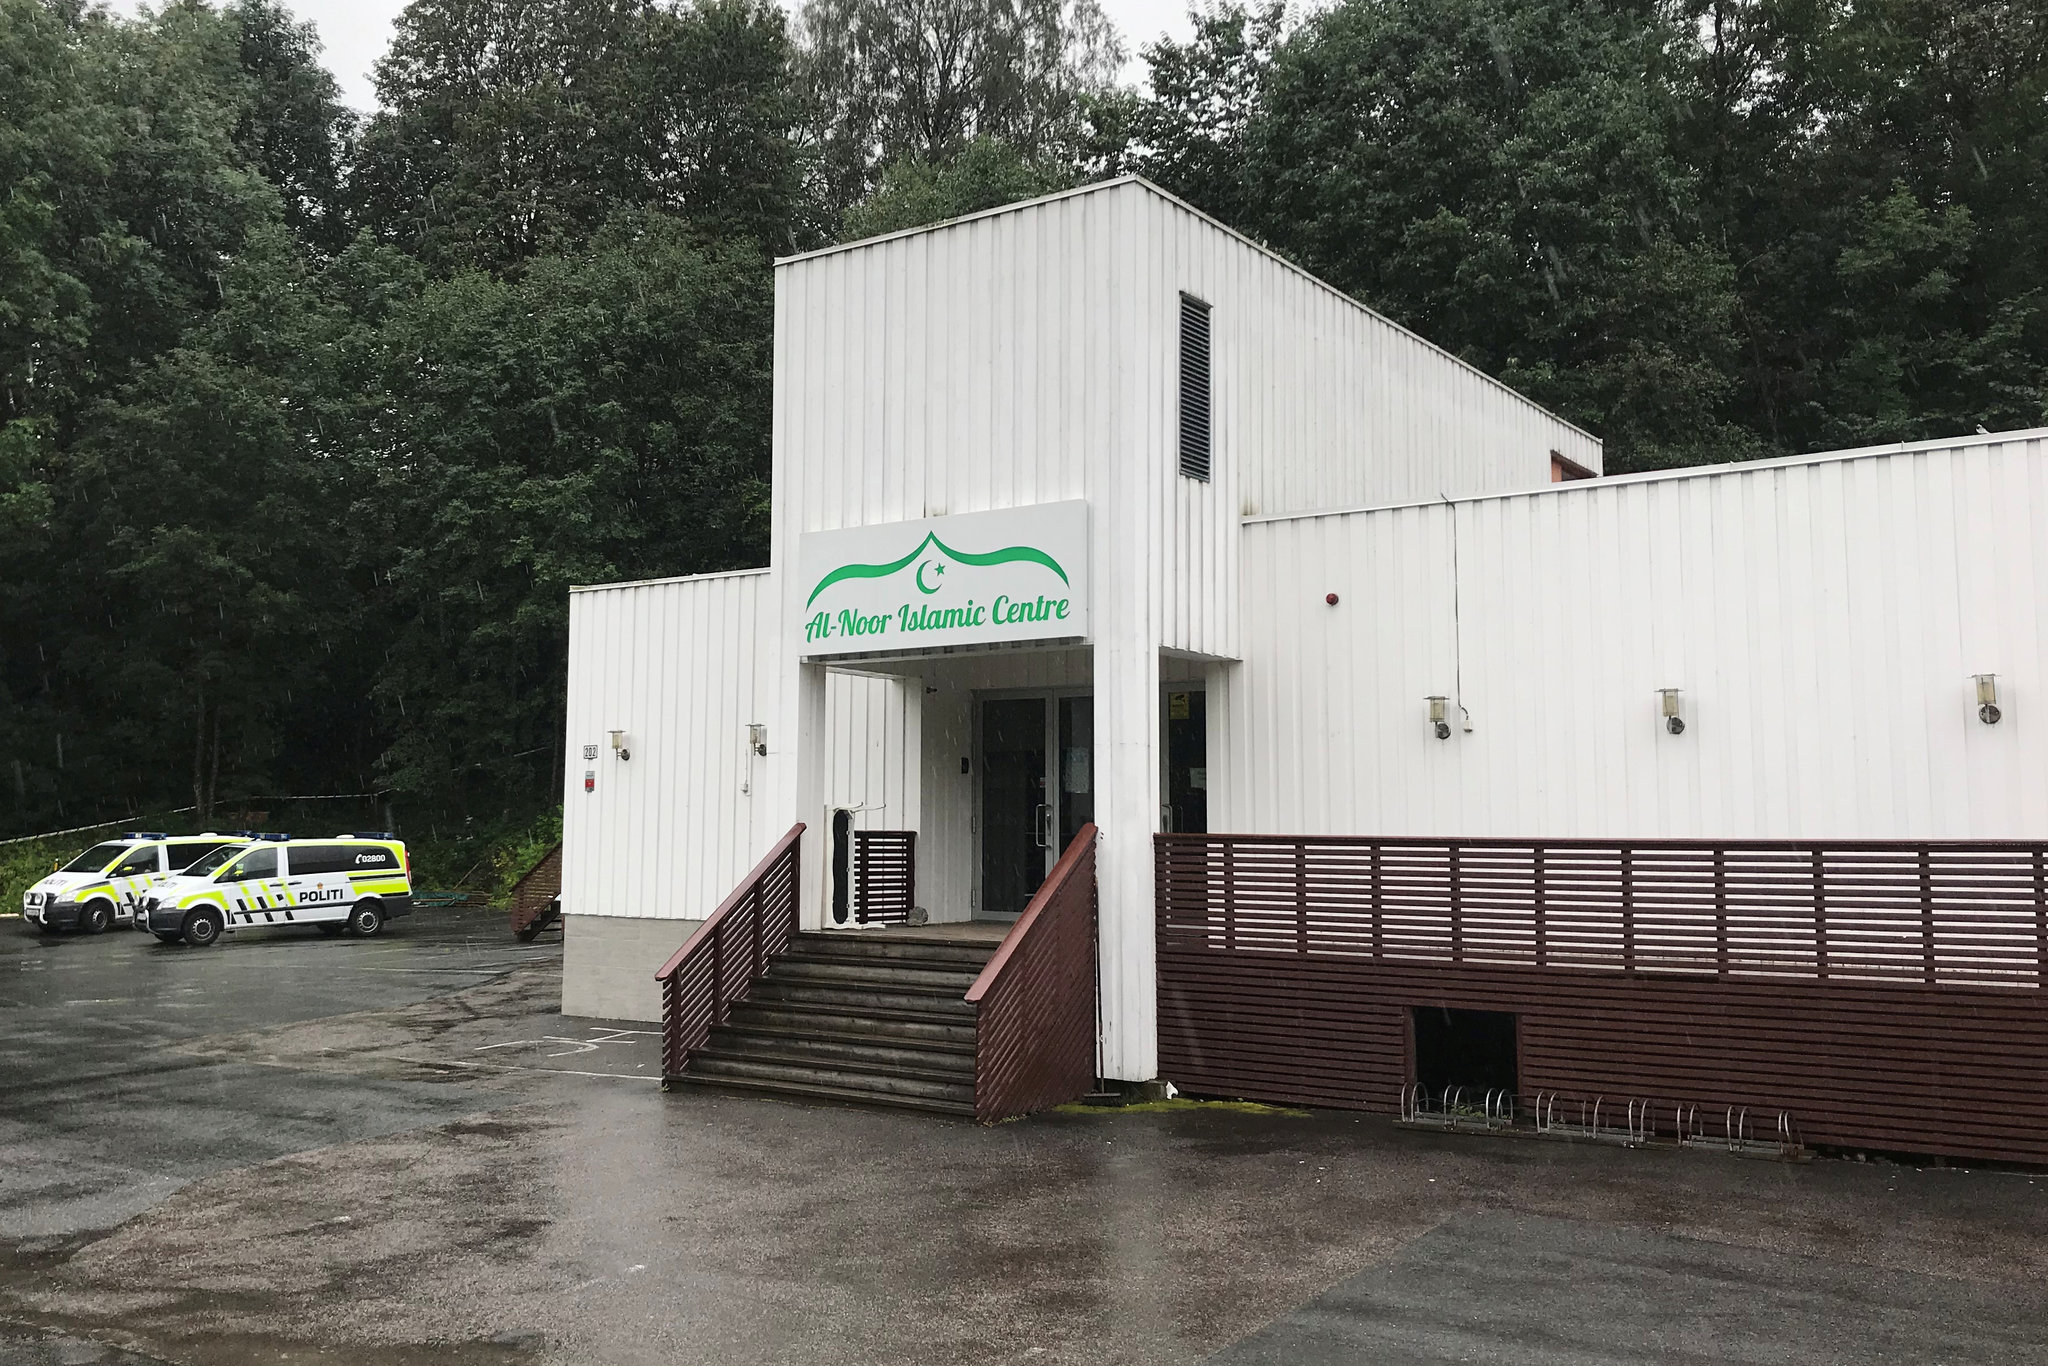 Norway Police Investigate Mosque Attack as Attempted 'Act of Terrorism'